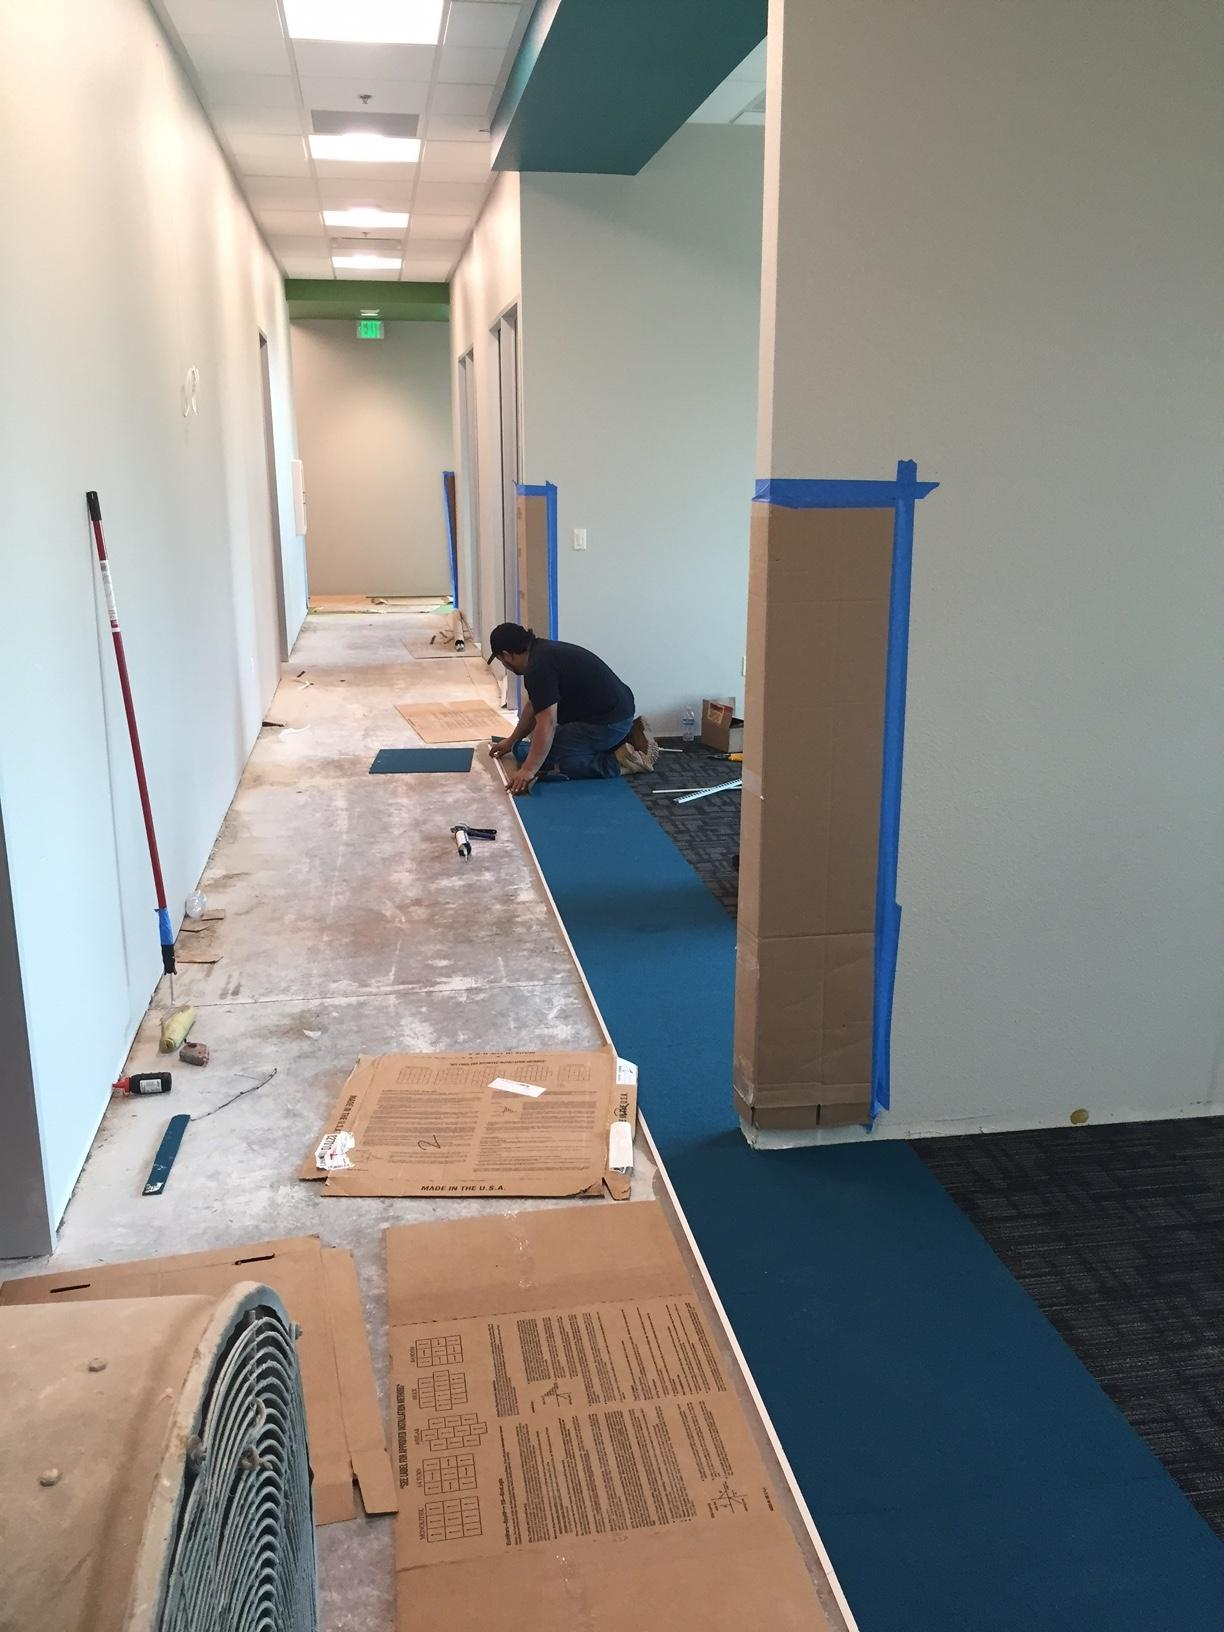 workers are busy installing carpet in the new building